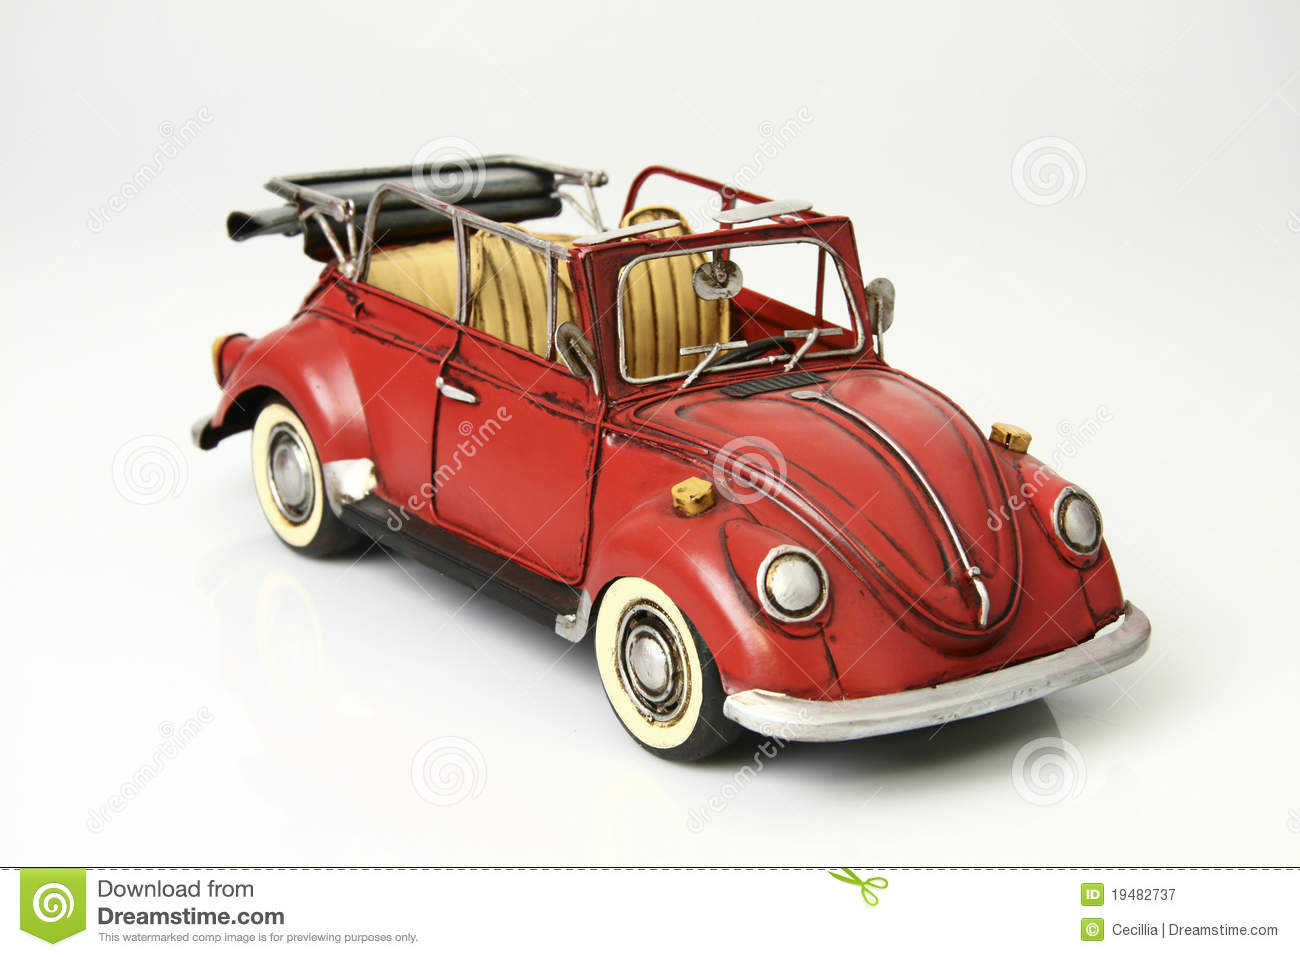 vintage car with open trunk in havana street stock photo 15900048. Black Bedroom Furniture Sets. Home Design Ideas